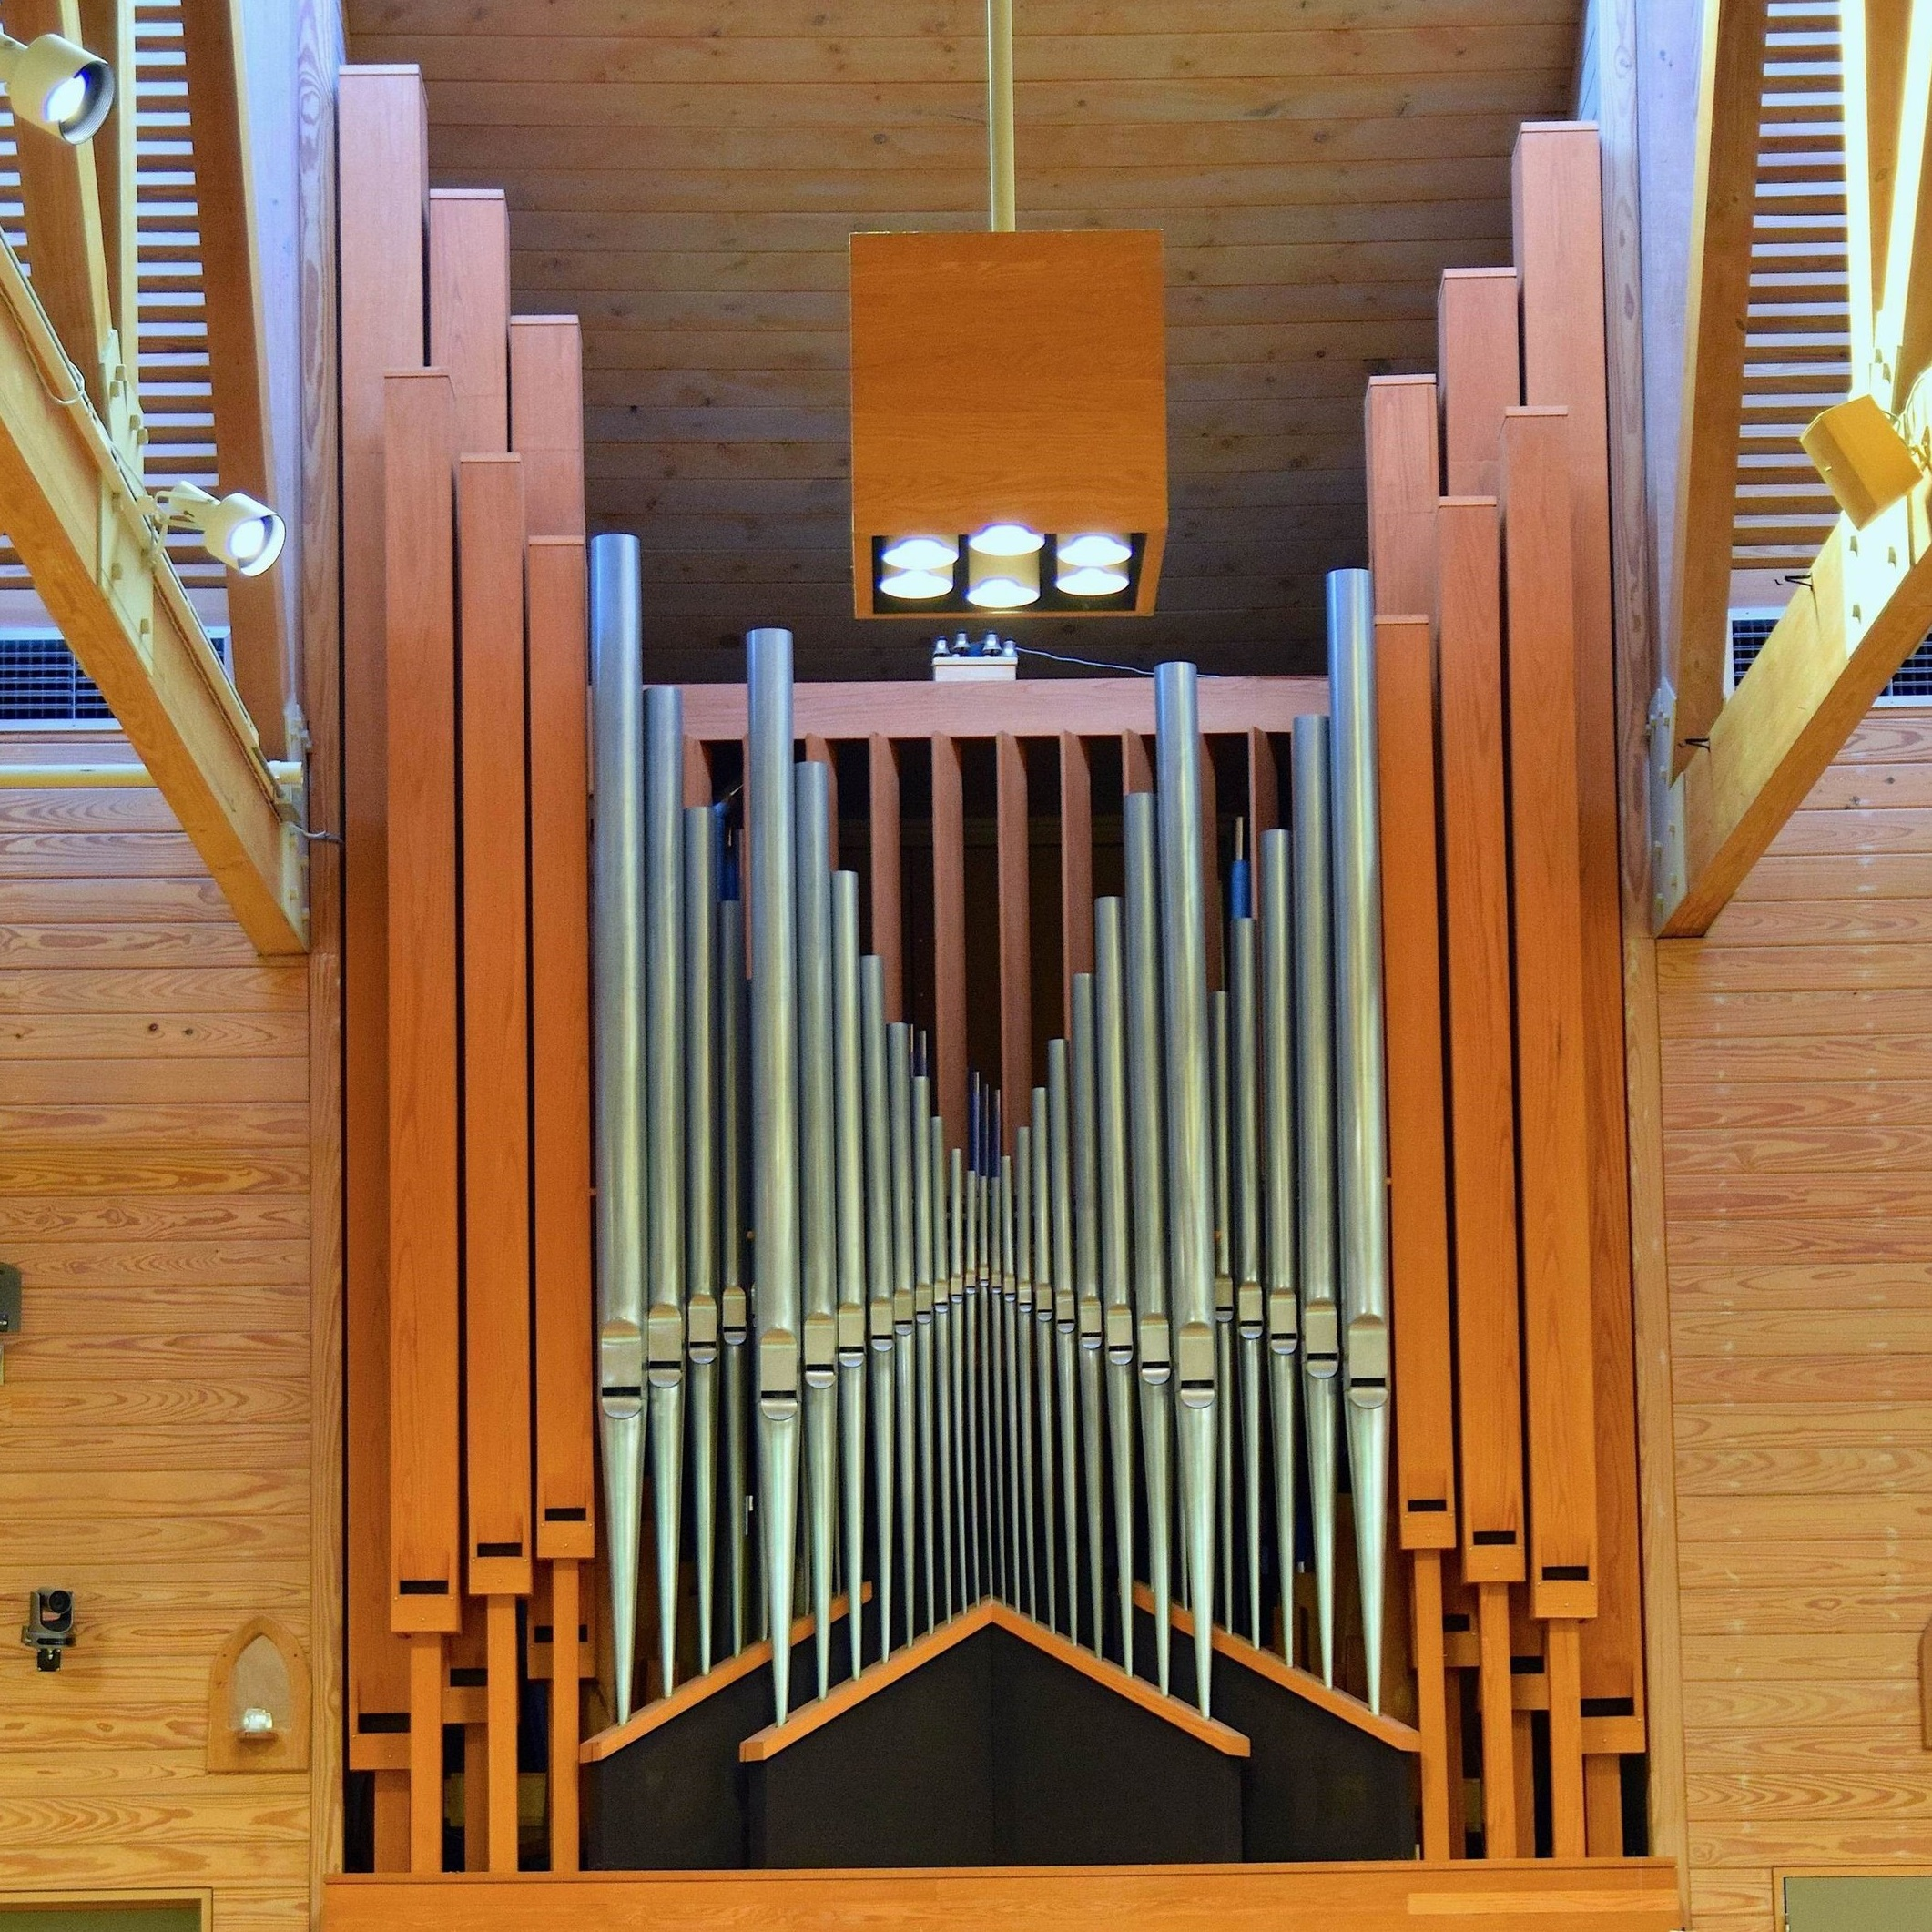 Oscar, pipe organ